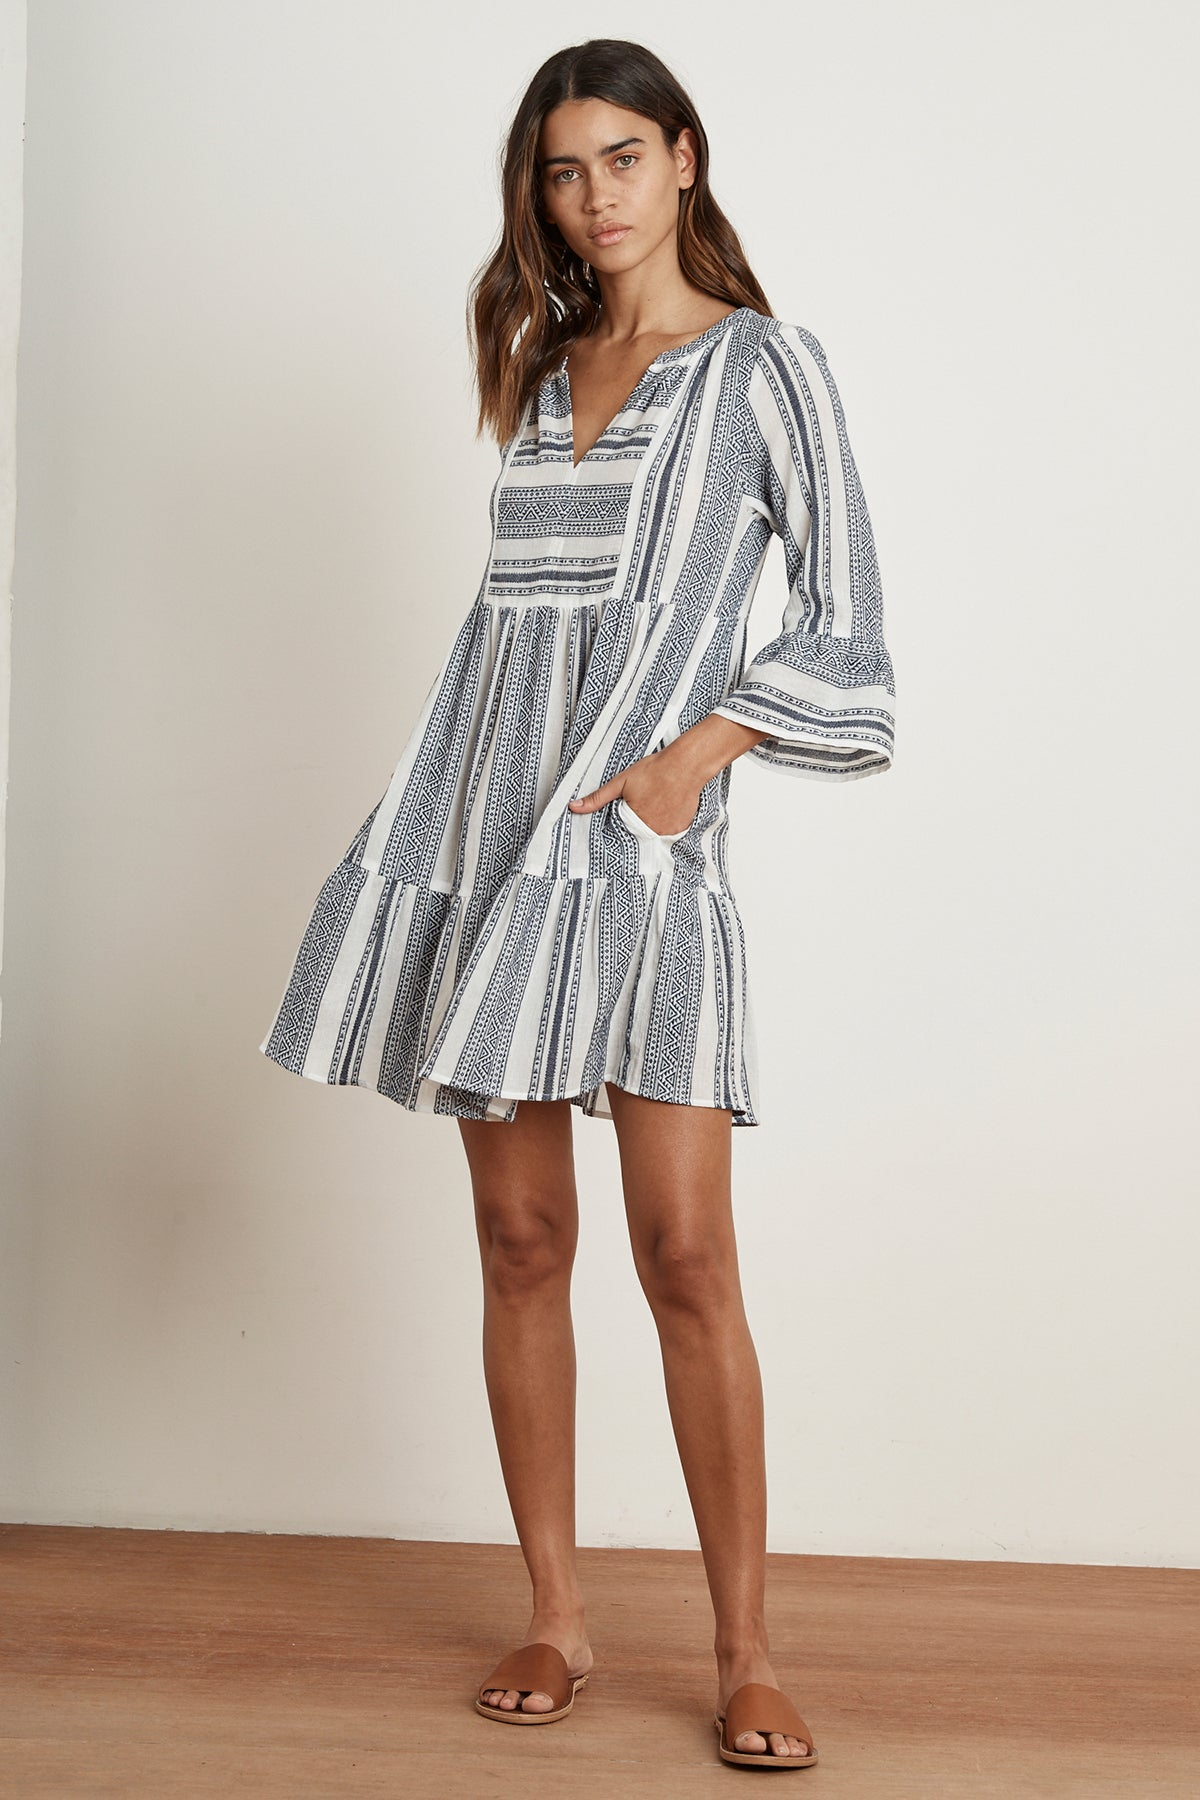 CAMBRIA MALAGA JACQUARD PEASANT DRESS